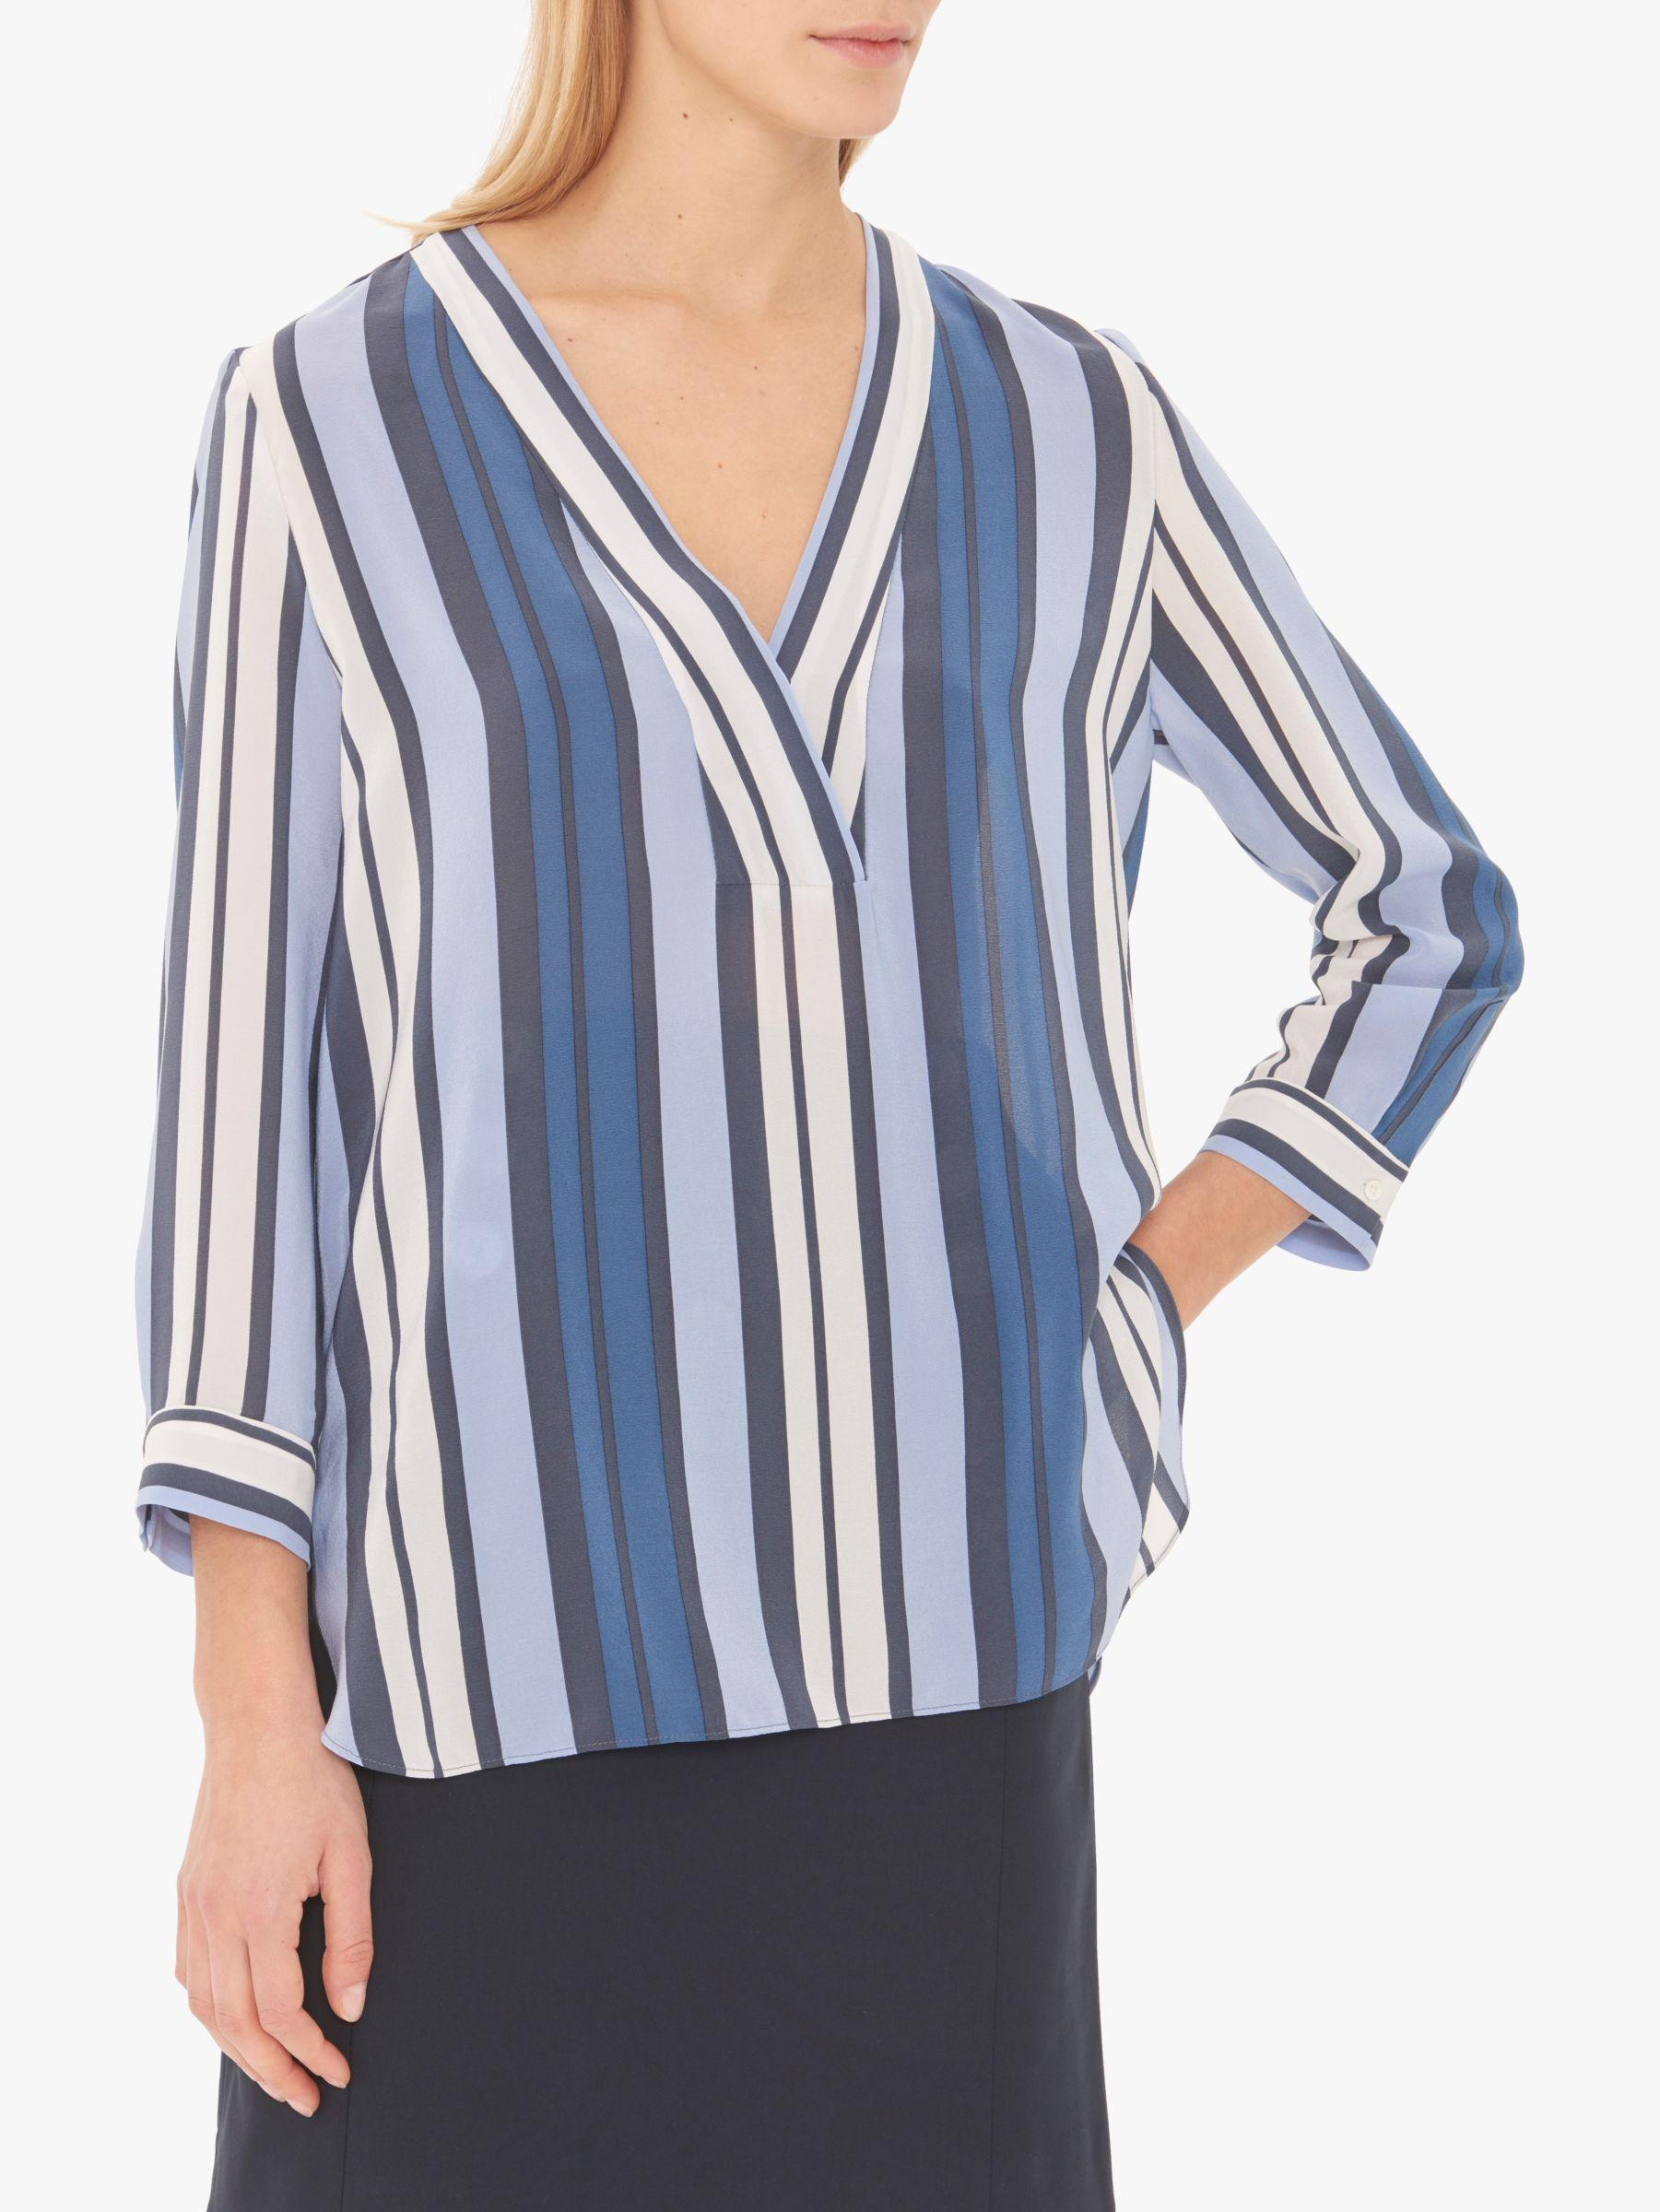 931d1c25b32c2 Gerard Darel Emily Blouse in Blue - Lyst